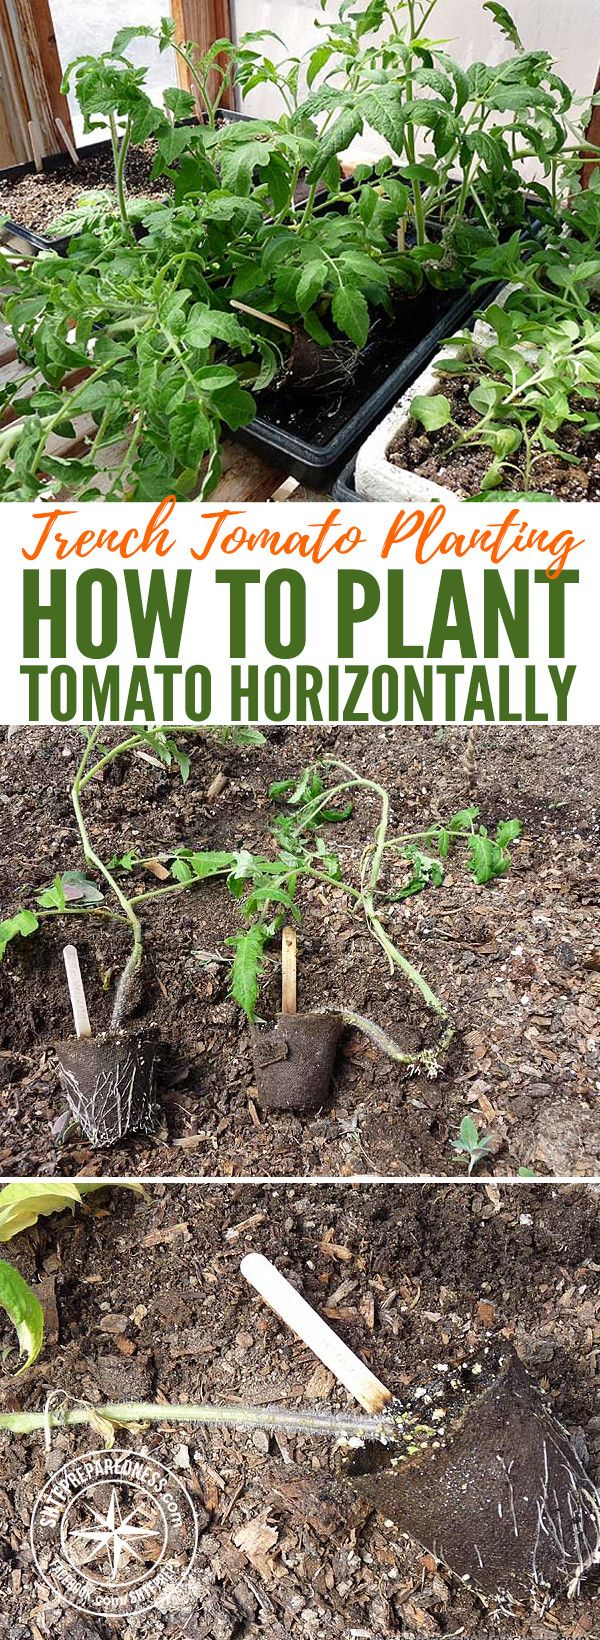 What is the best soil for tomatoes - 25 Best Ideas About How To Plant Tomatoes On Pinterest How To Grow Tomatoes Grow Tomatoes And Growing Tomatoes